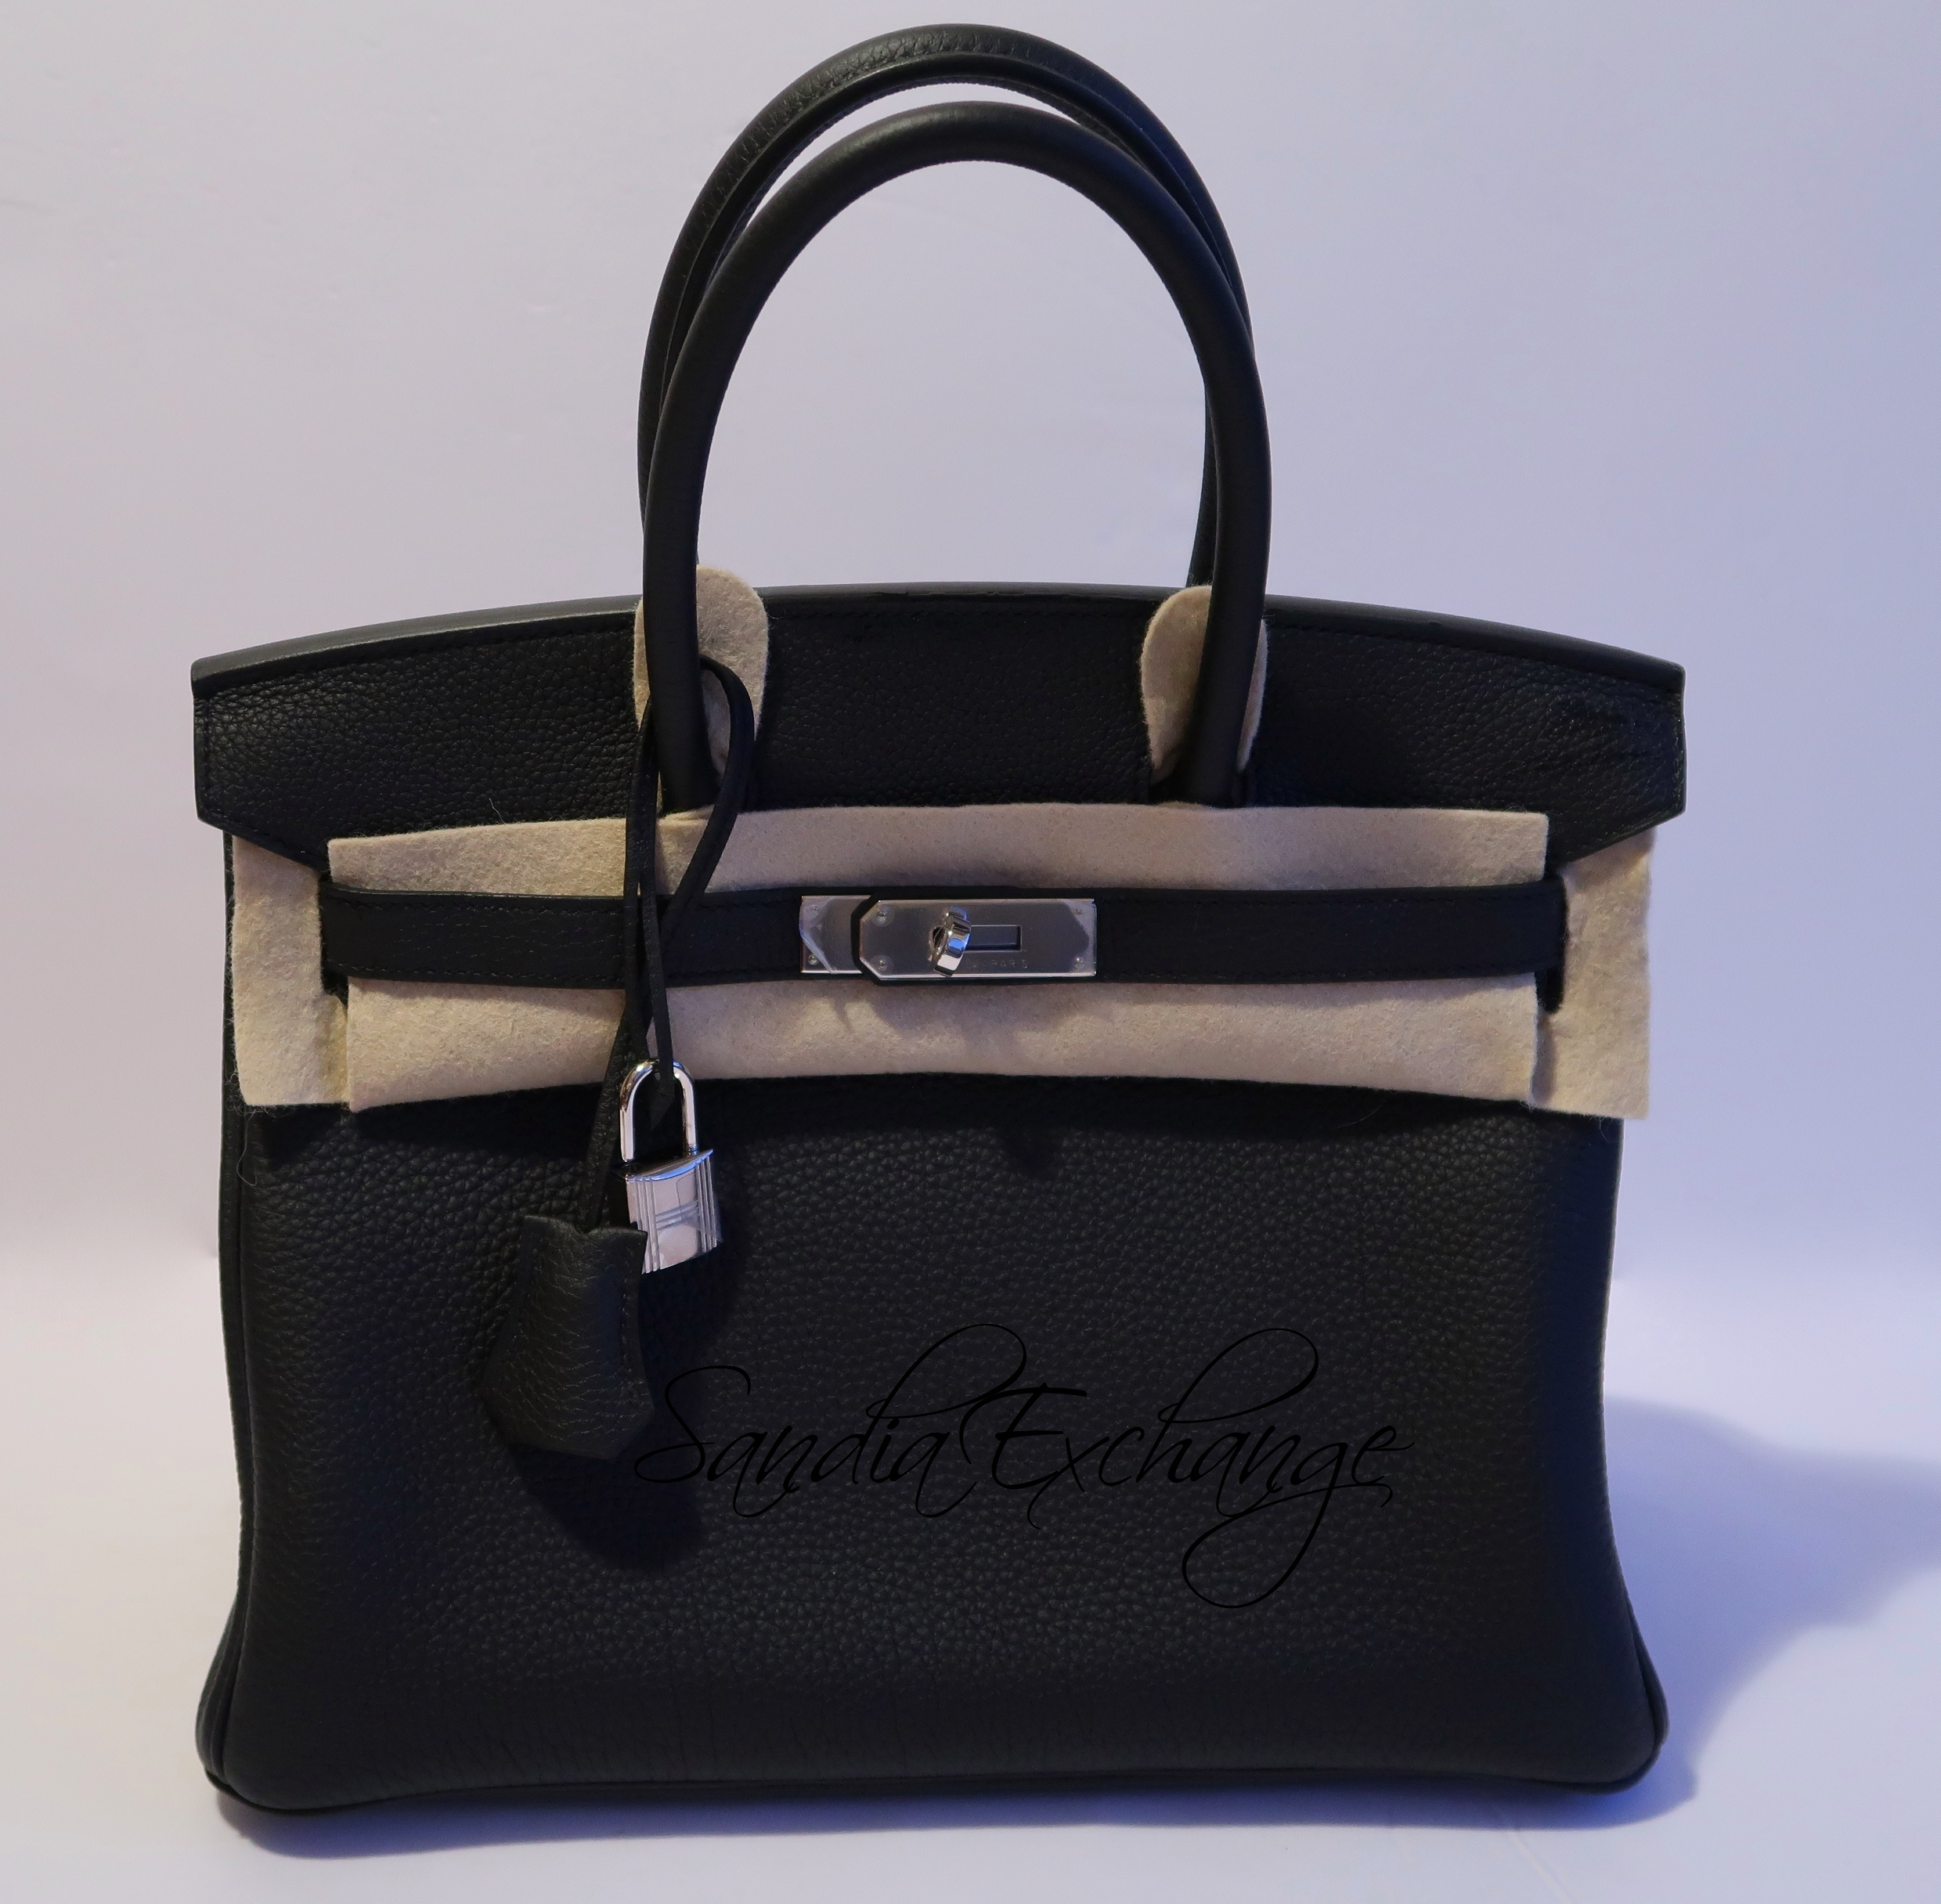 81e454caa41 HERMES Birkin 30 cm Black Togo Palladium Hardware Authentic HERMÈS ...